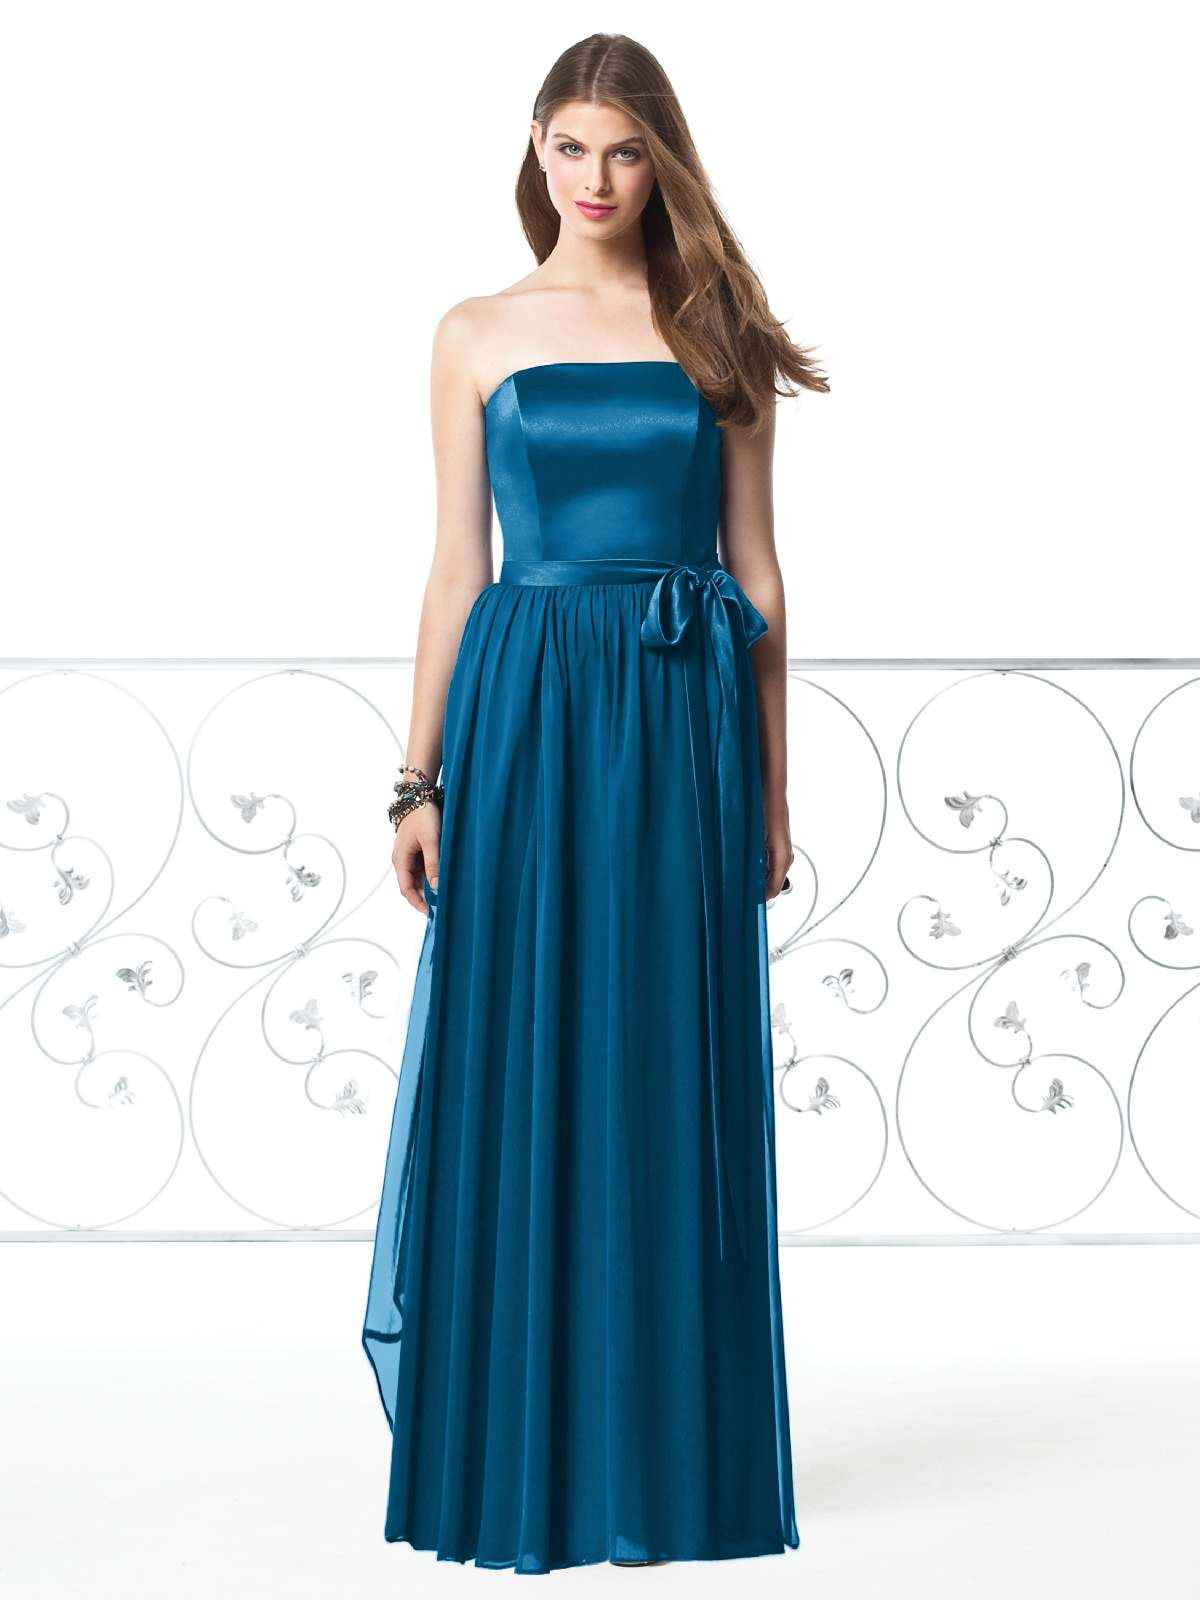 de6b5eaacf8 Top Sale Blue Column Strapless Zipper Floor Length Pleated Prom Dresses  With Sash